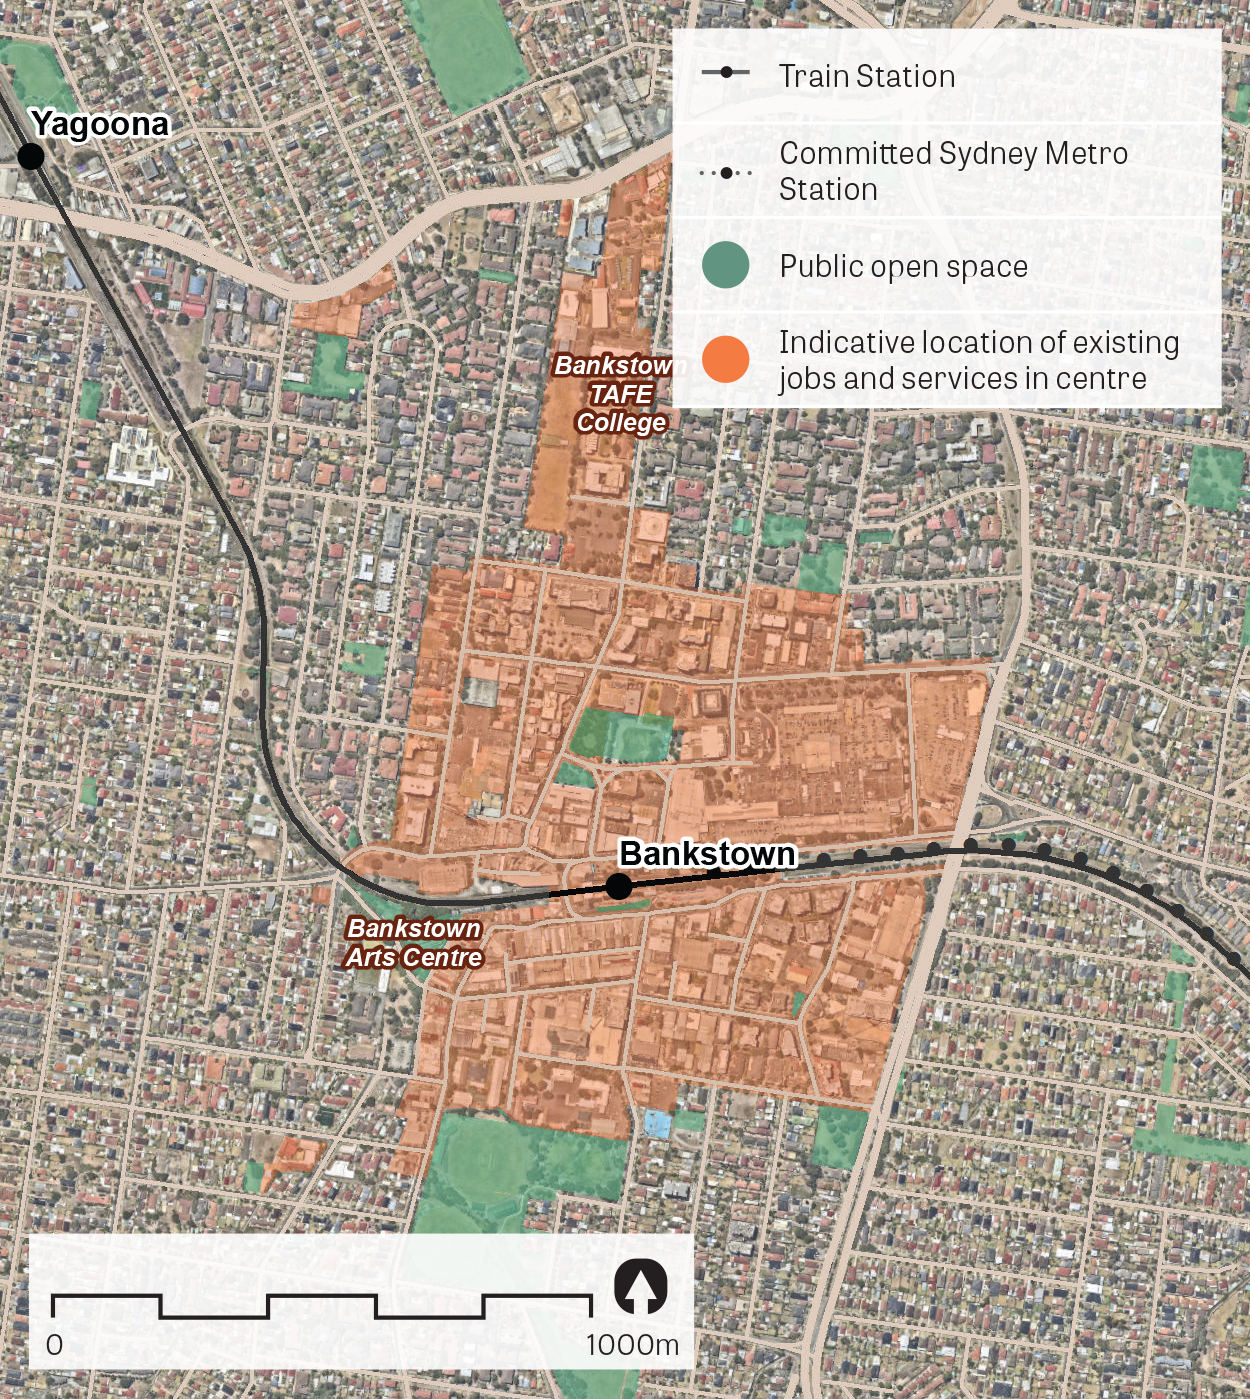 An aerial image of Bankstown showing the principal areas containing jobs and services.